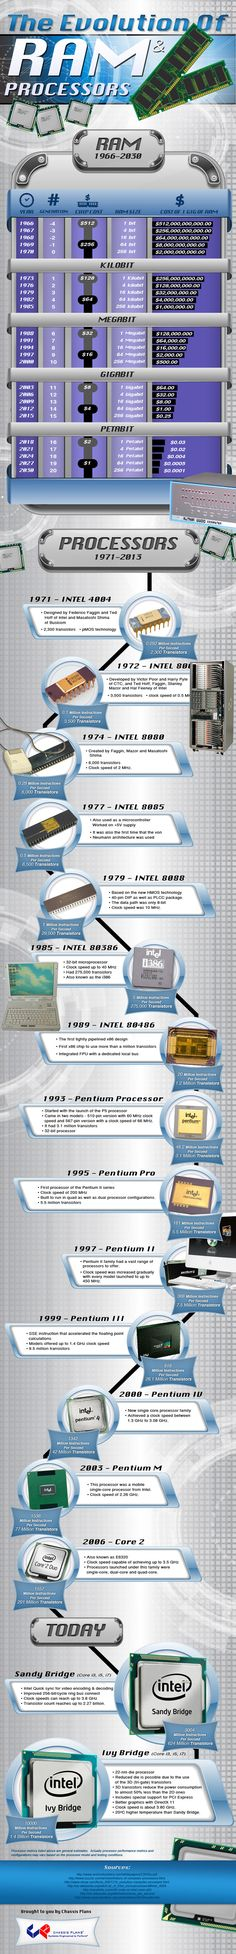 Good infographic, missing two things: -Core2 was the first Intel 64 bit processor -New Haswell Architecture